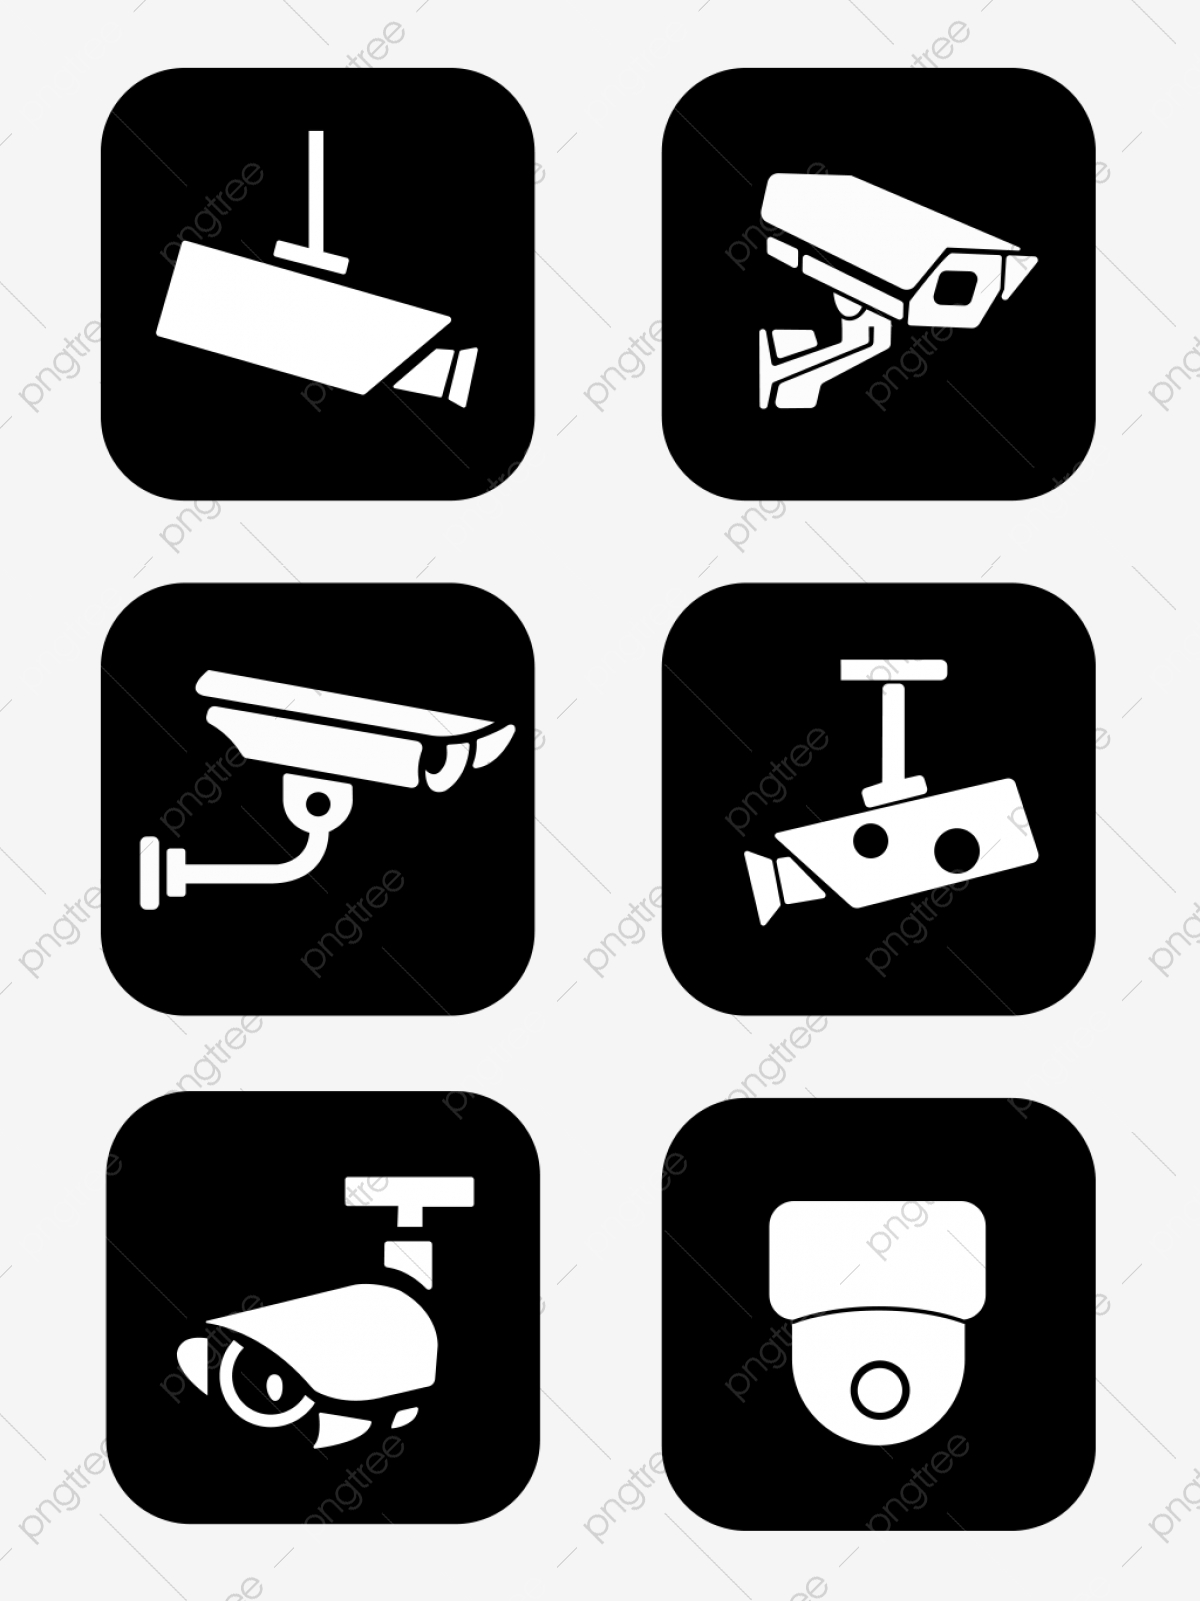 Black Camera Png Images Vector And Psd Files Free Download On Pngtree